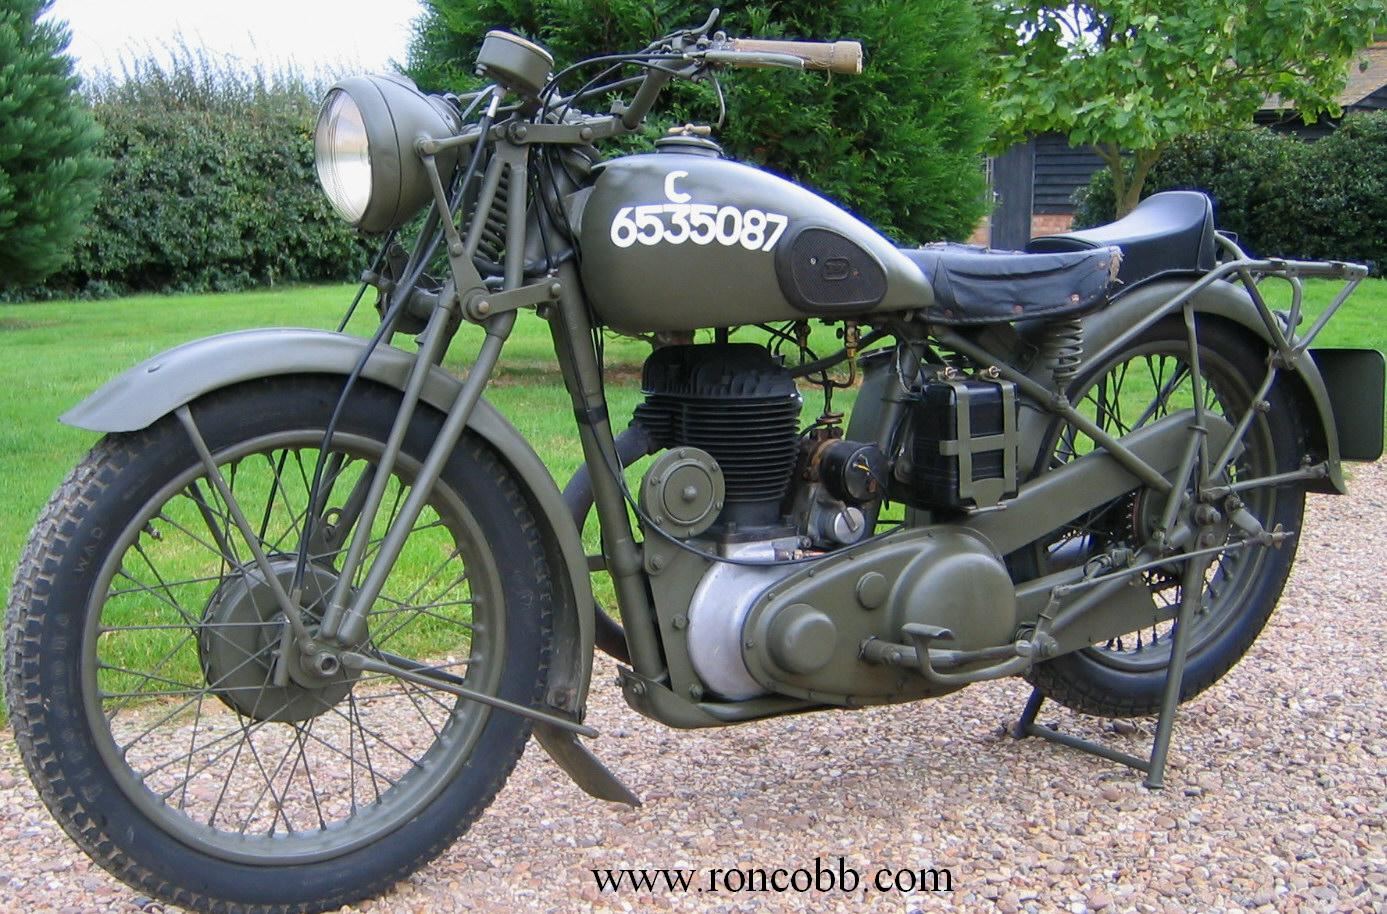 Bsa wm20 classic military motorcycle for sale for Vintage motor cycles for sale